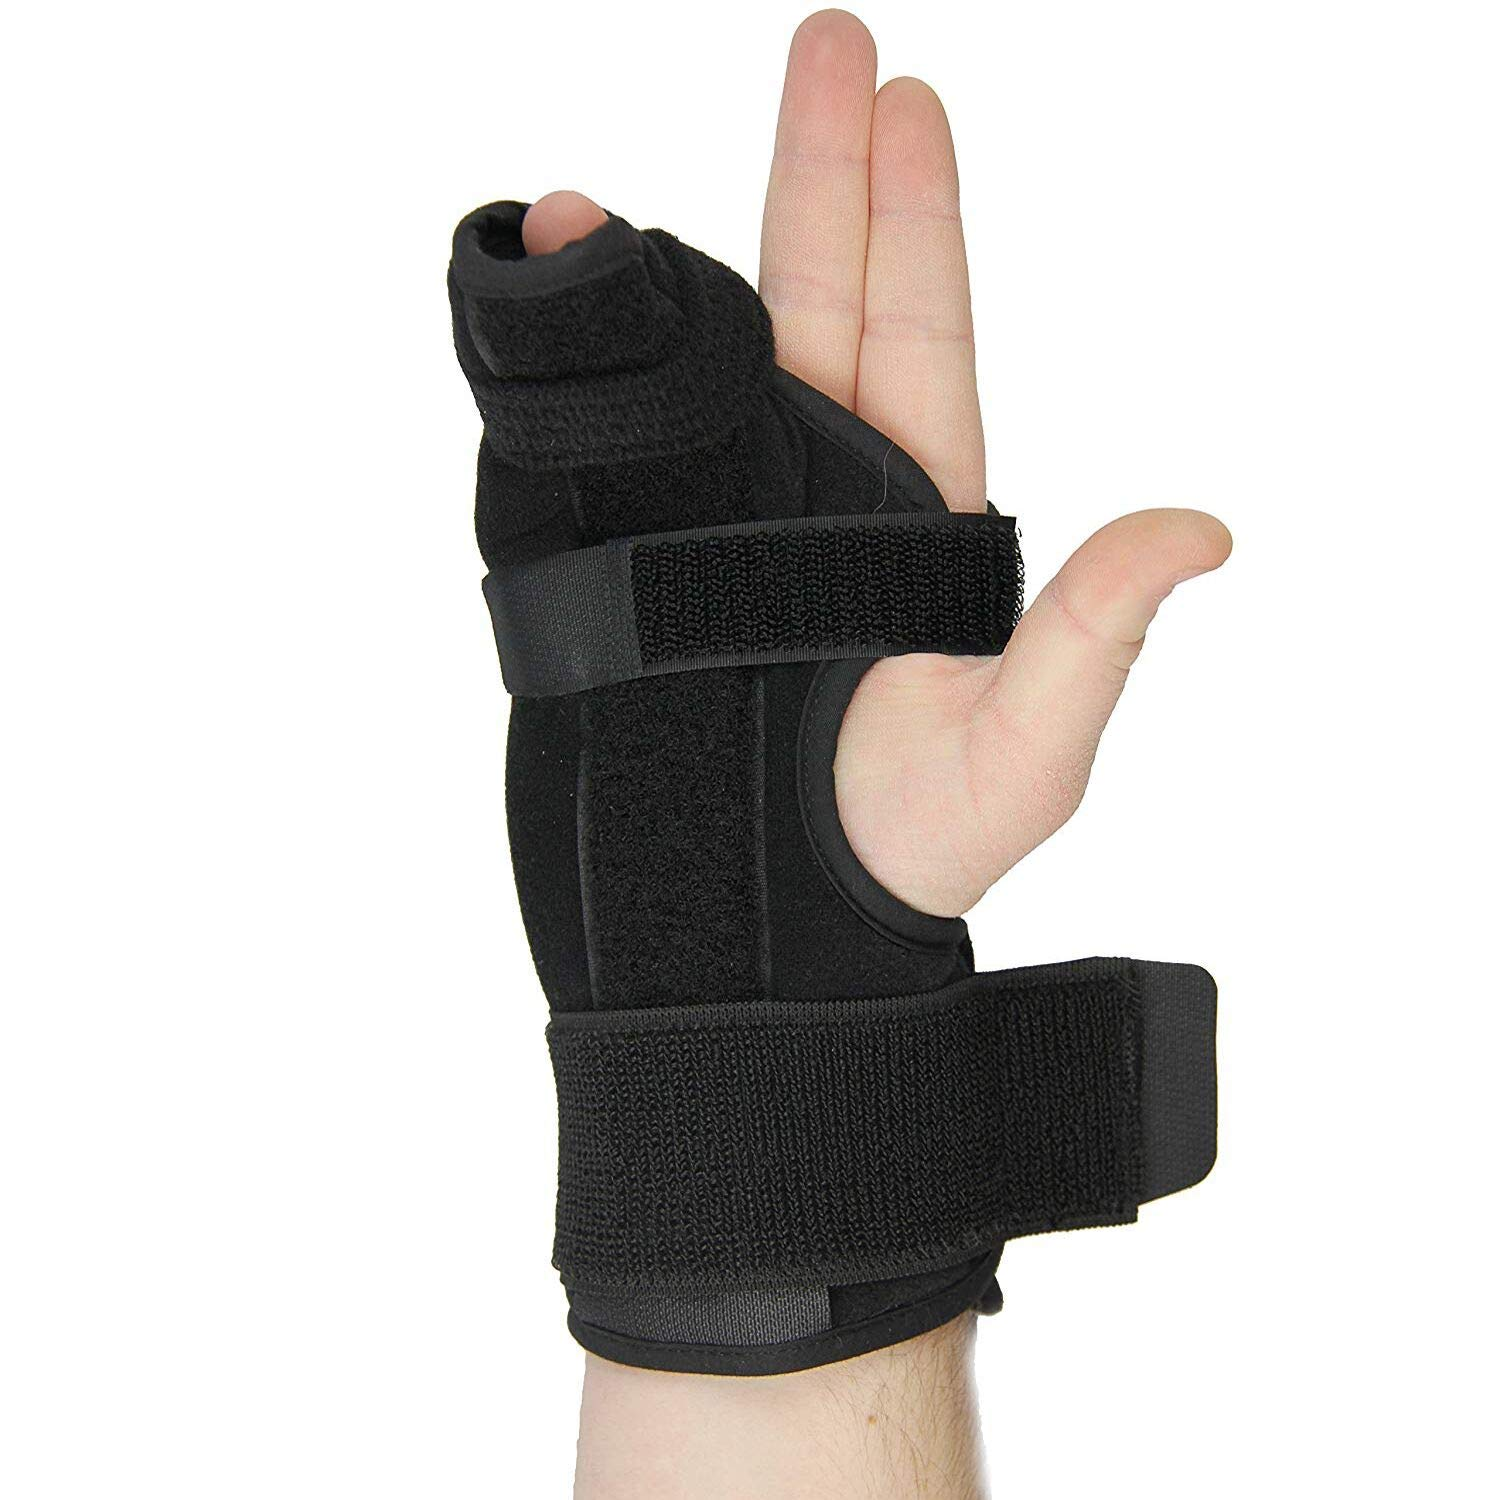 Metacarpal Splint- Boxer Splint for Right Hand, Easy to Put On and Take Off, Stabilizing Splint for Metacarpal and Hand Injuries, a U.S. Solid Product (Large)